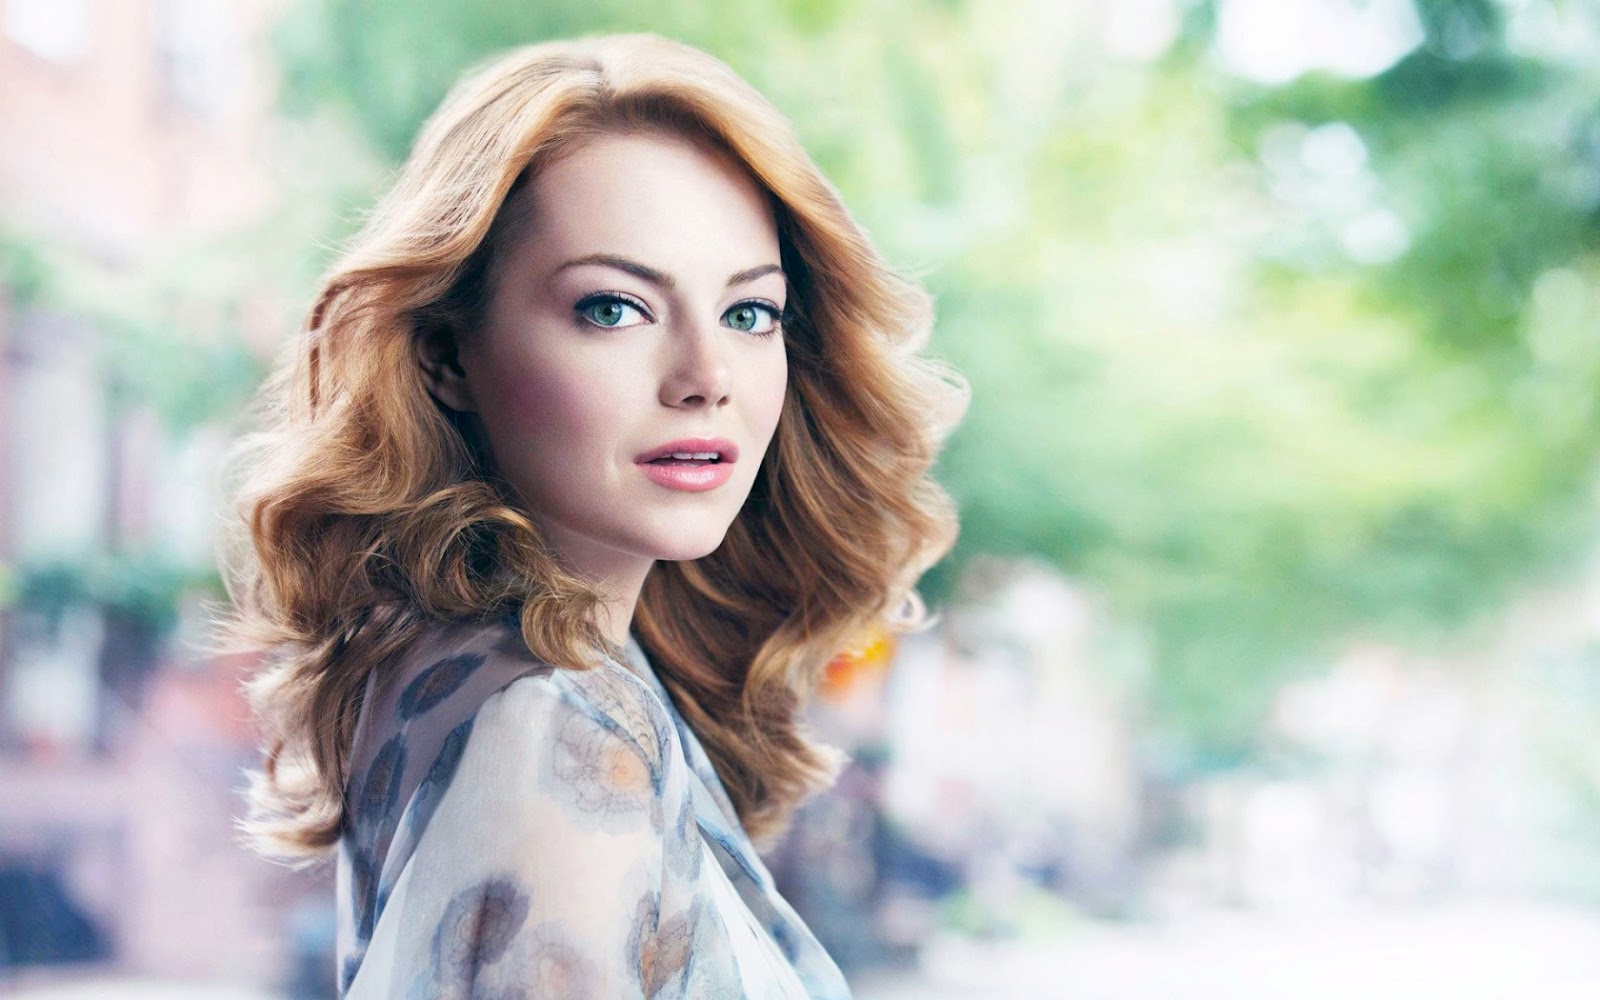 who is emma stone dating now 2015